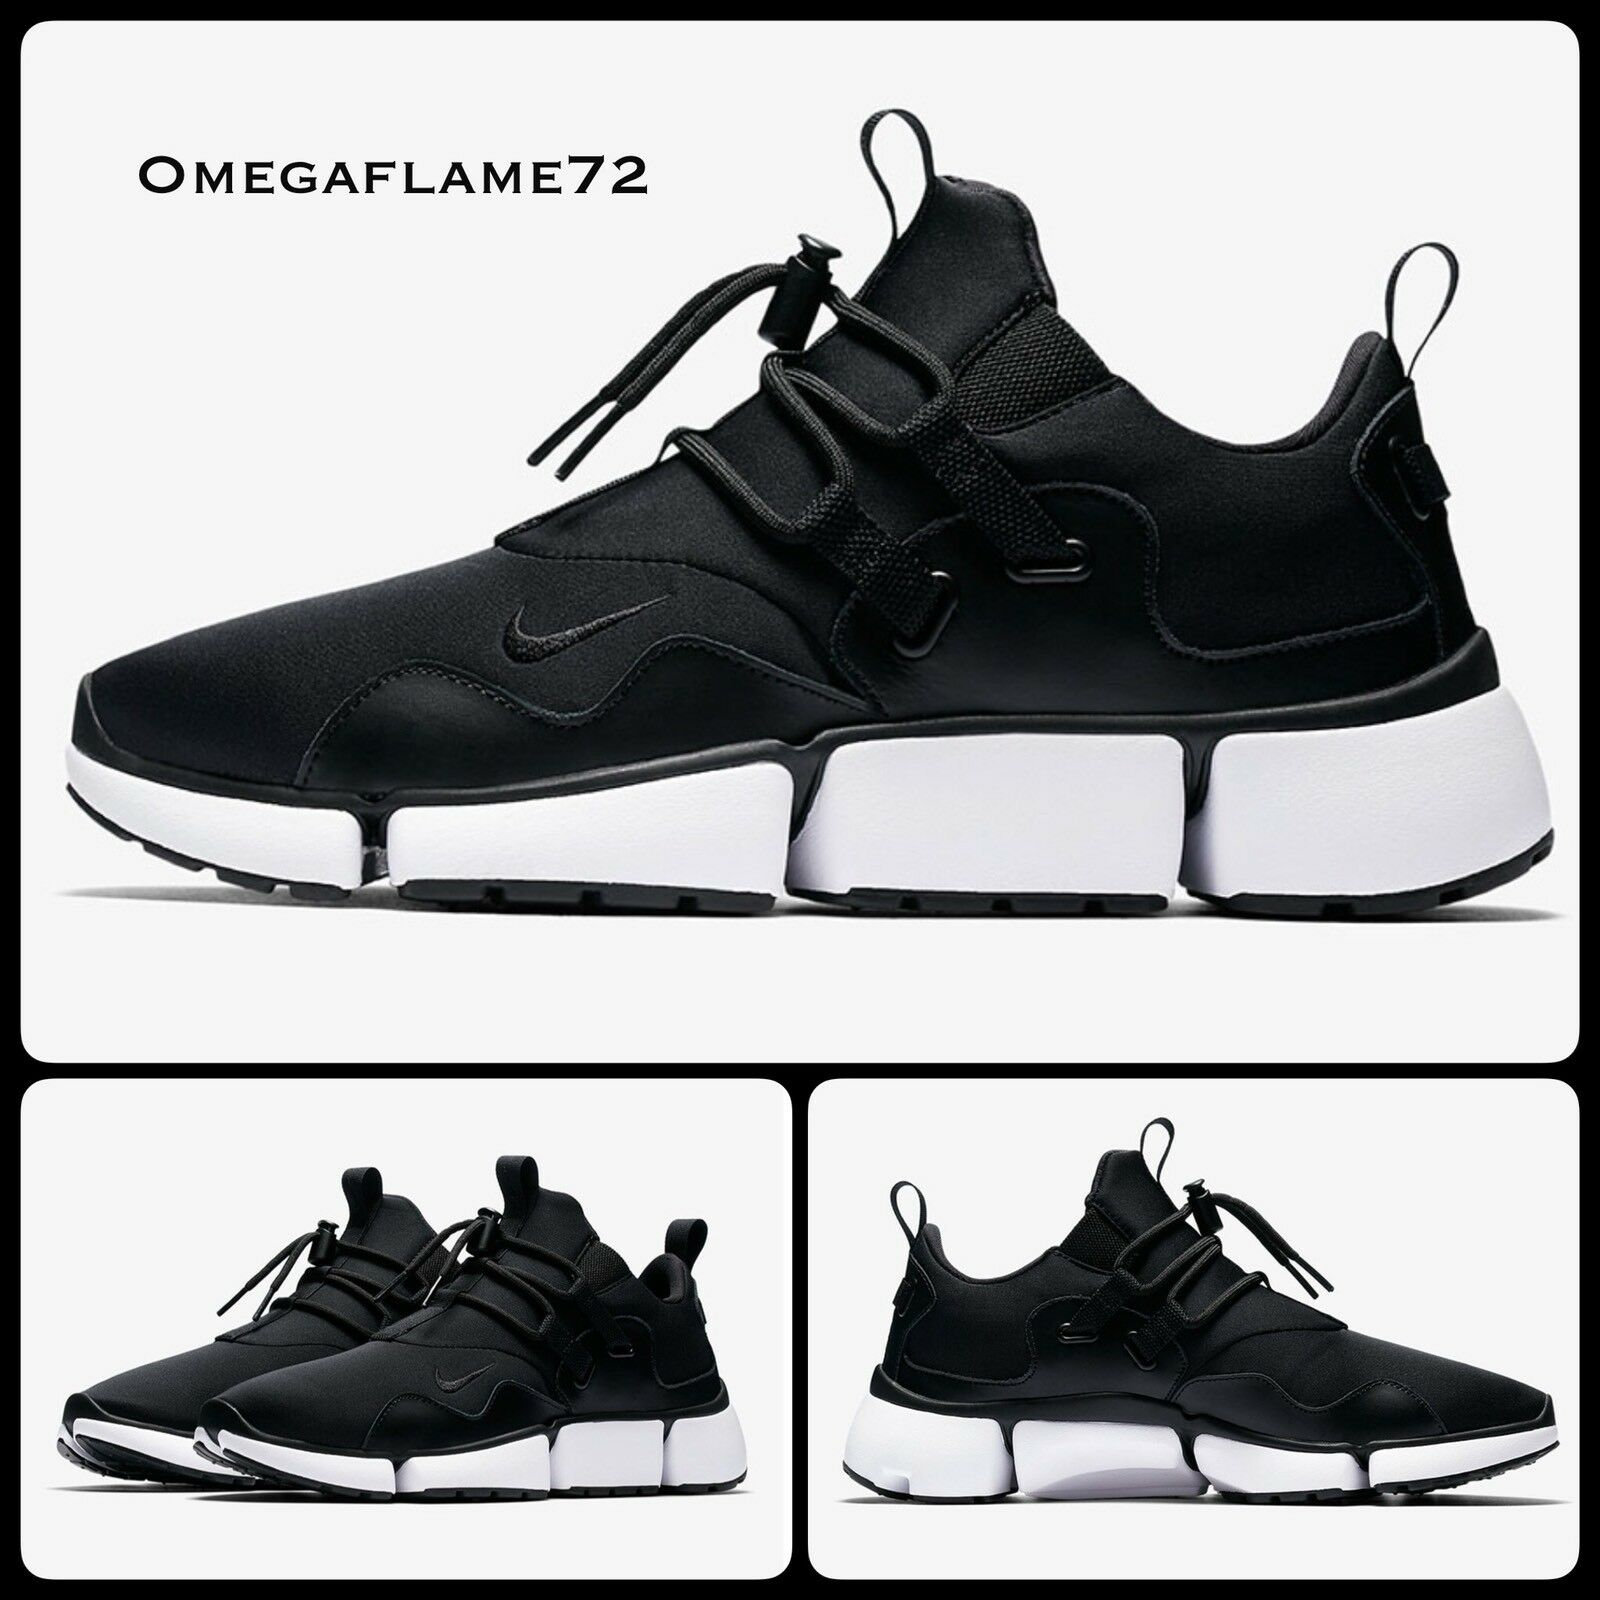 Nike Pocketknife DM Noir & Blanc 898033-001 Tailles UK 10 EU 45 USA 11